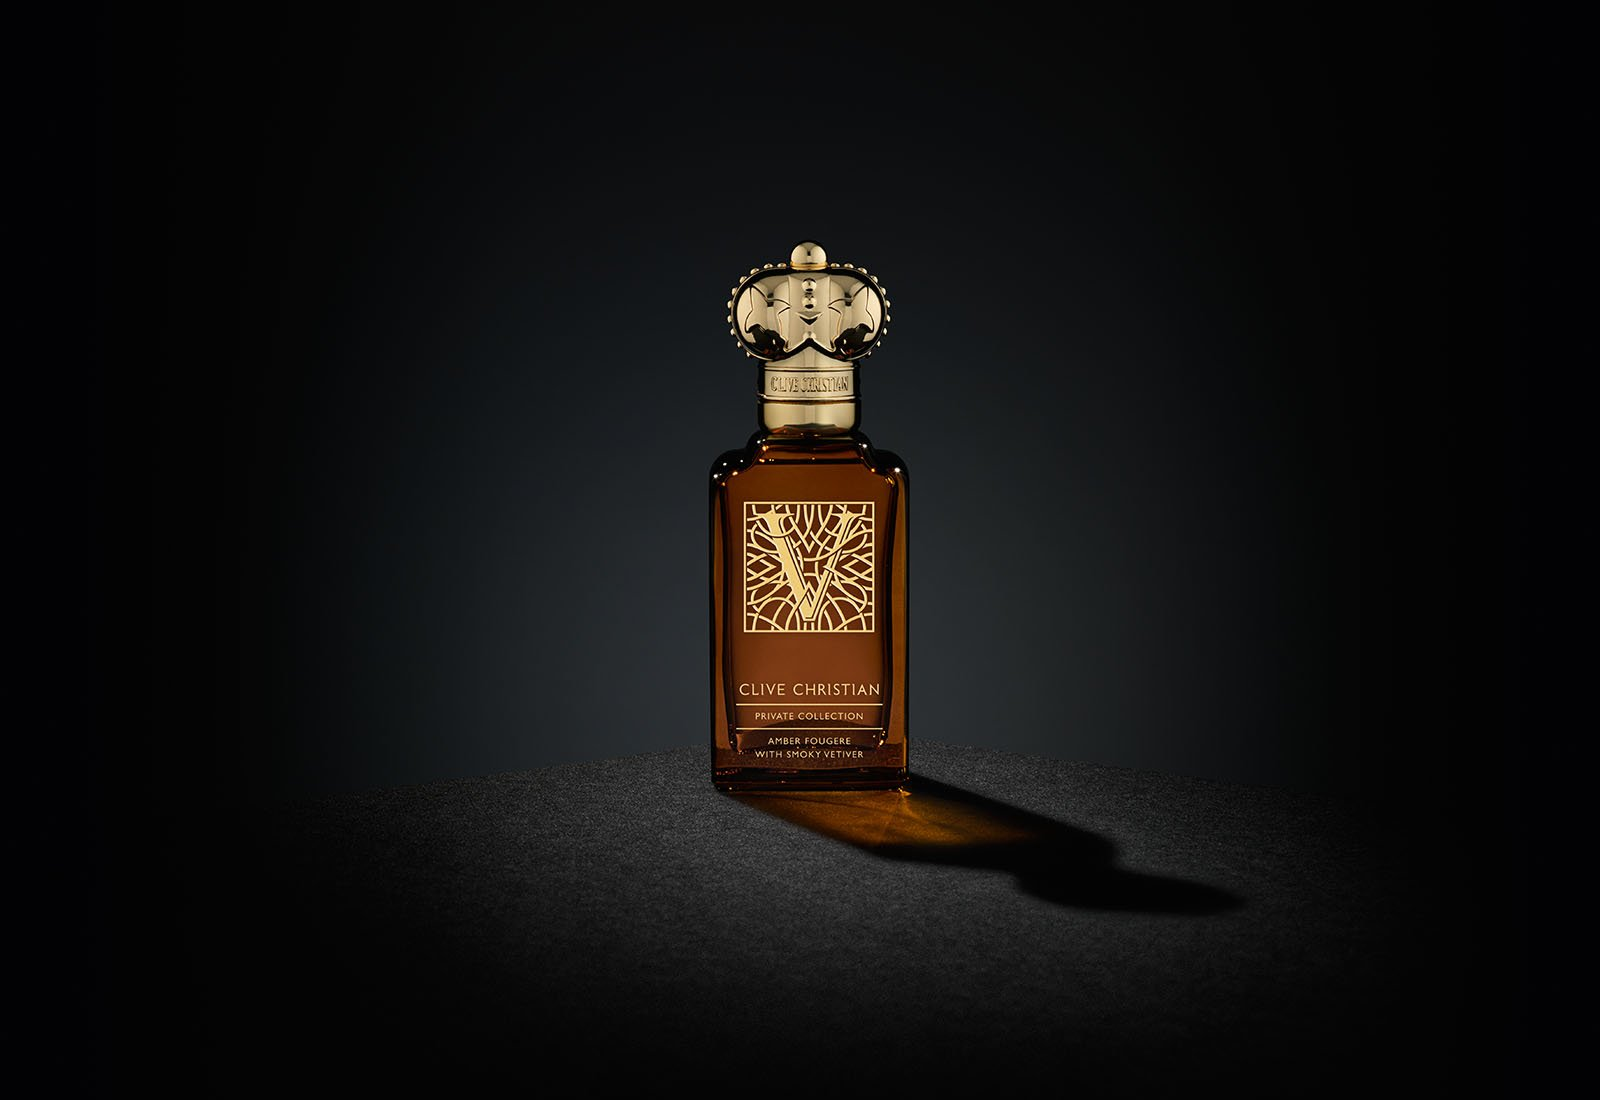 Clive Christian's luxury perfume, V Amber Fougere comes in a brown bottle with a gold cap